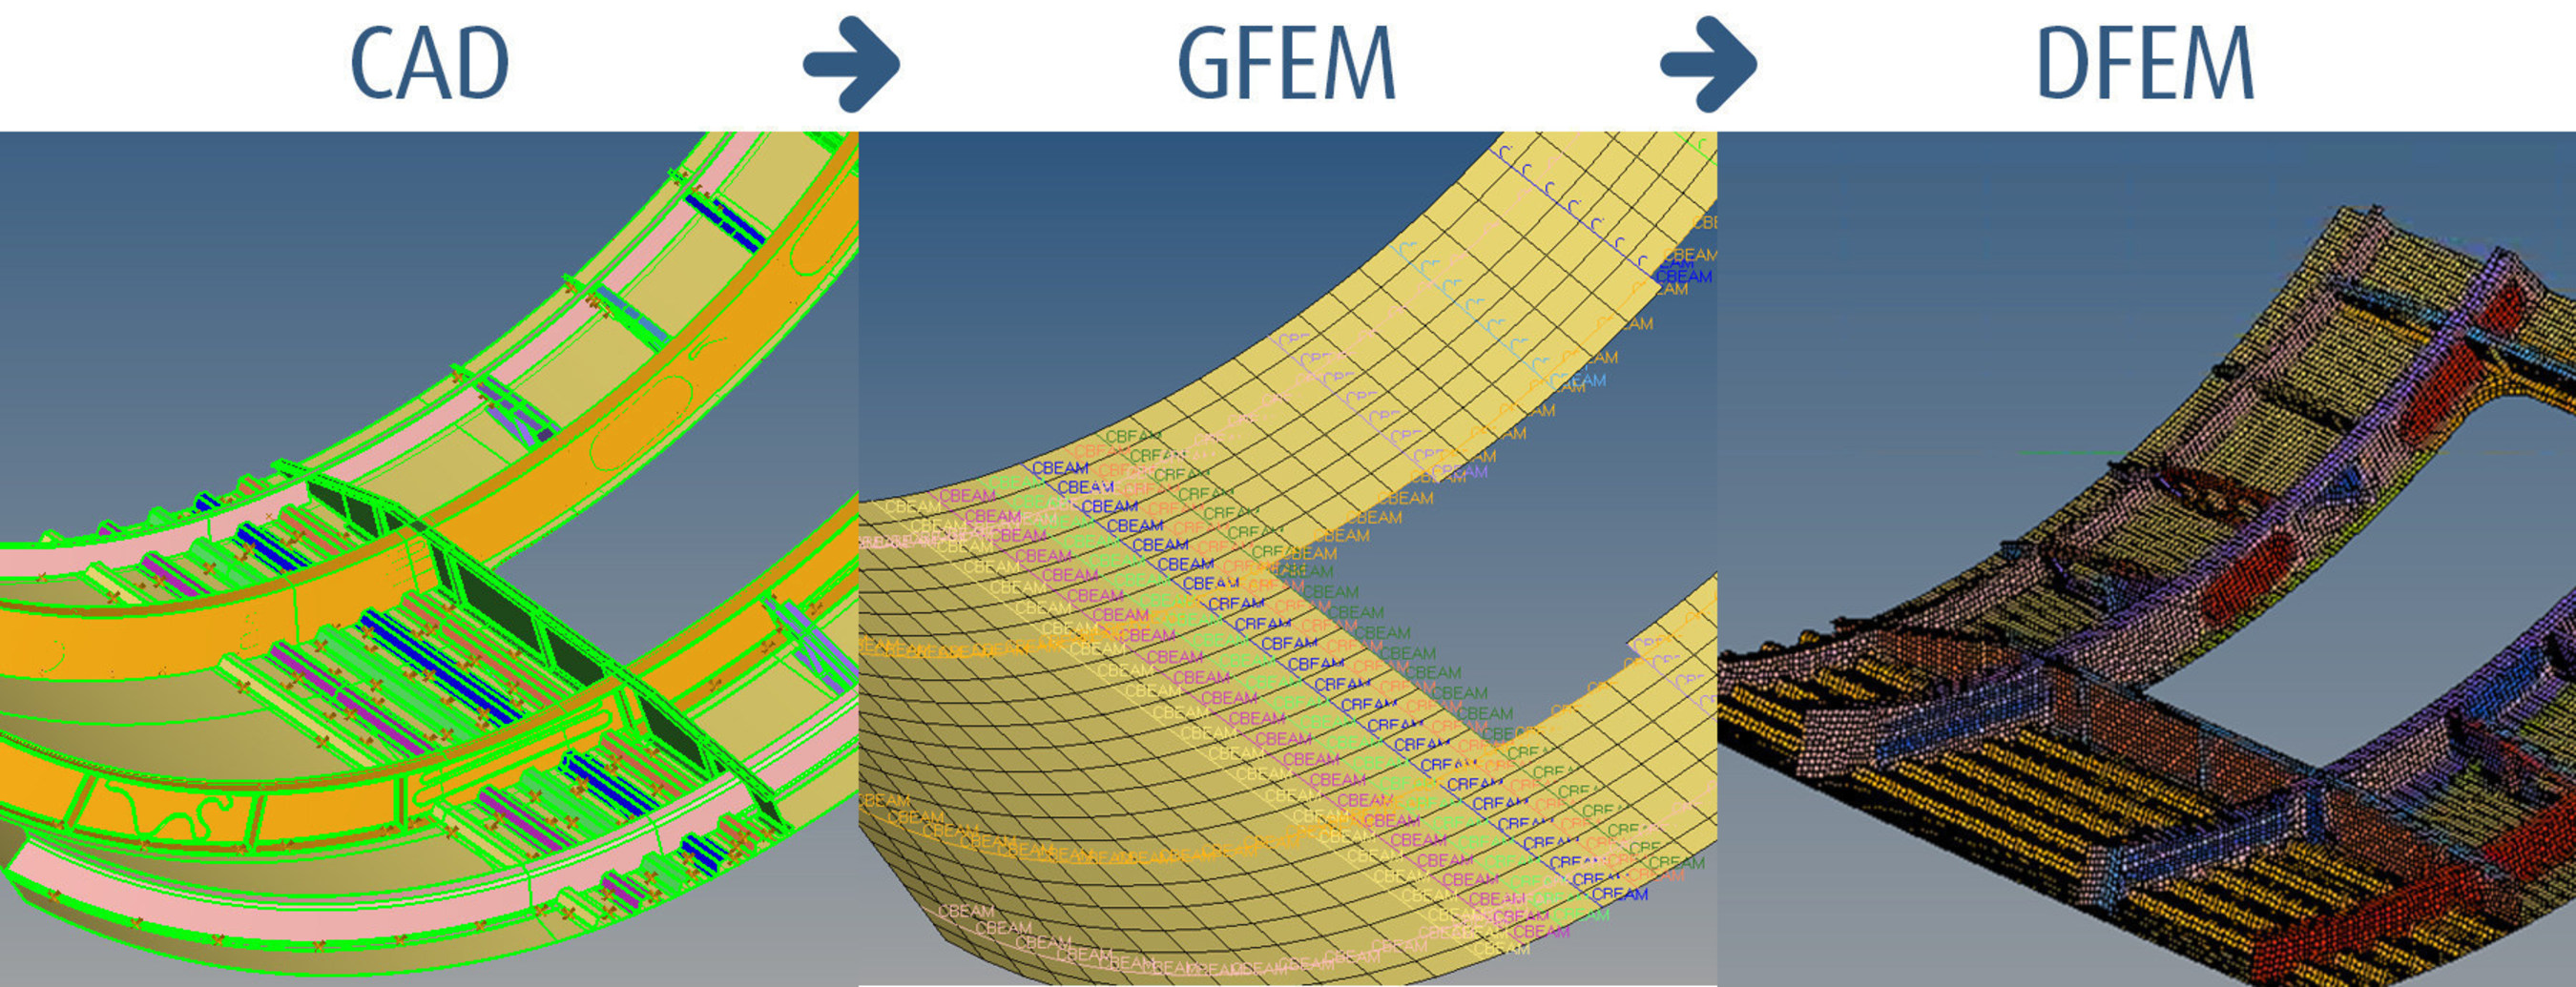 Providing a complete workflow to go from CAD to Global Model (GFEM) to Detailed Model (DFEM)